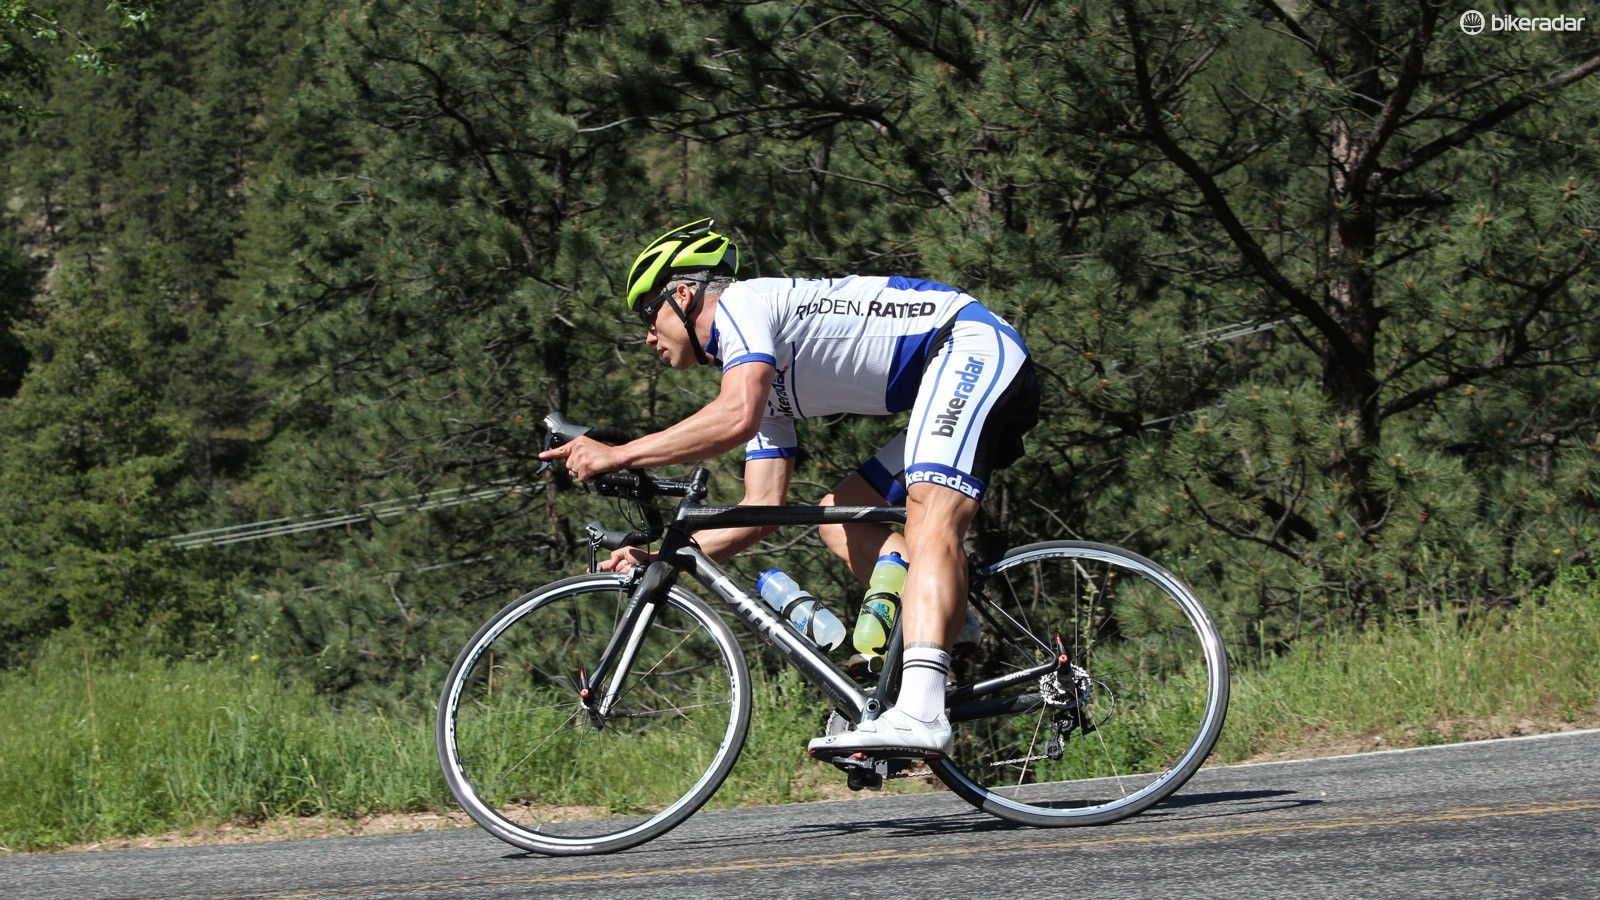 I loved riding the BMC Teammachine SLR01 - up and down mountains, on dirt, pavement... anywhere, really